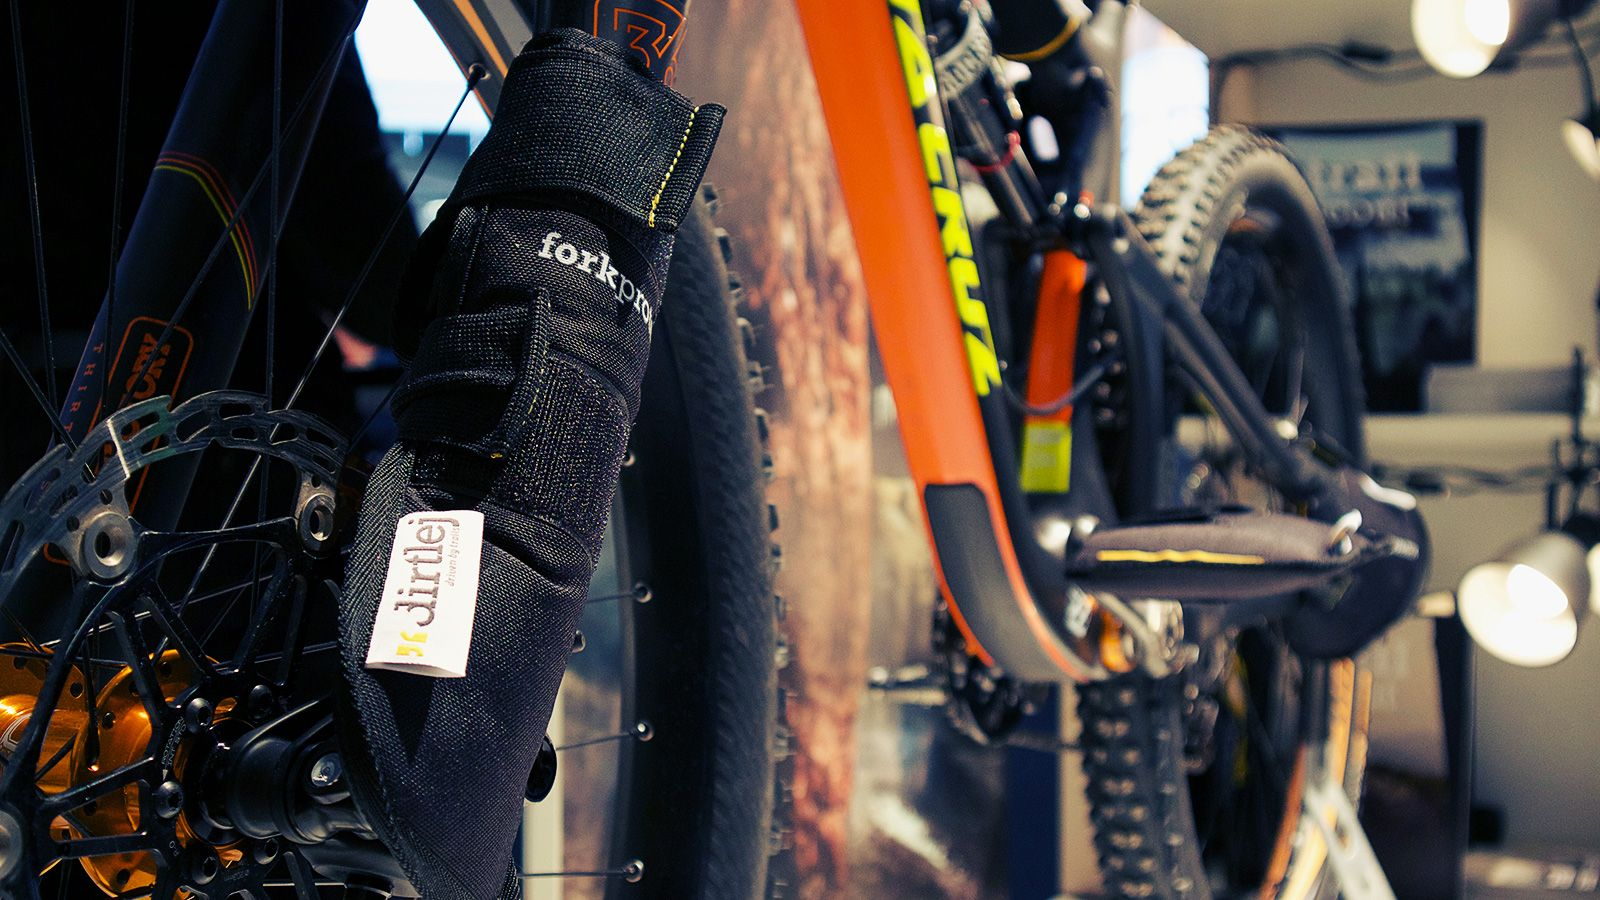 dirtlej - bikeprotection bike carrier